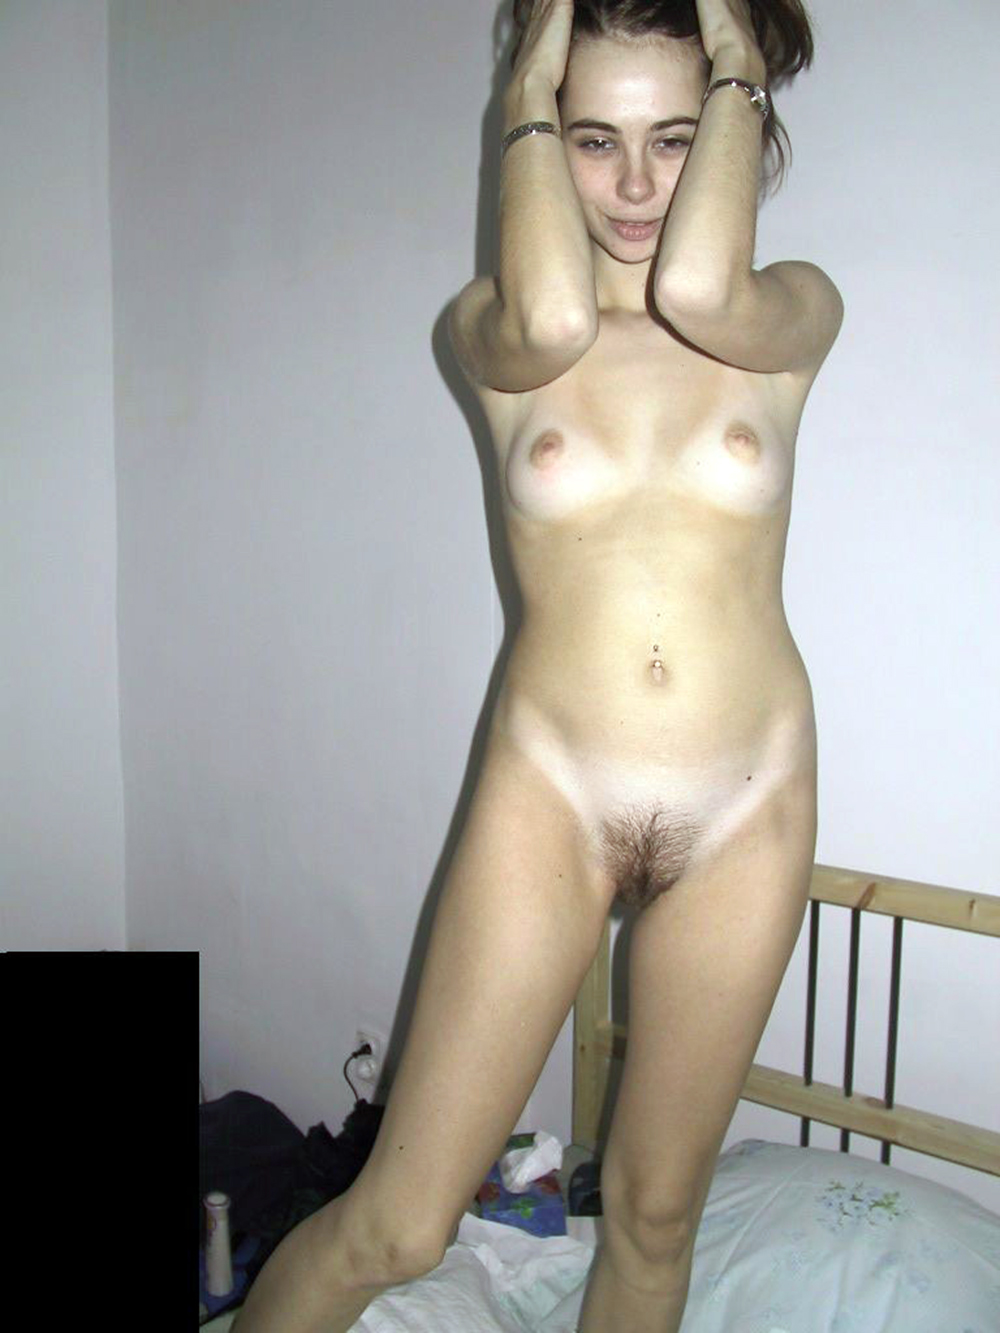 She can Amateur free free hairy natural pussy tit cabrones Loved